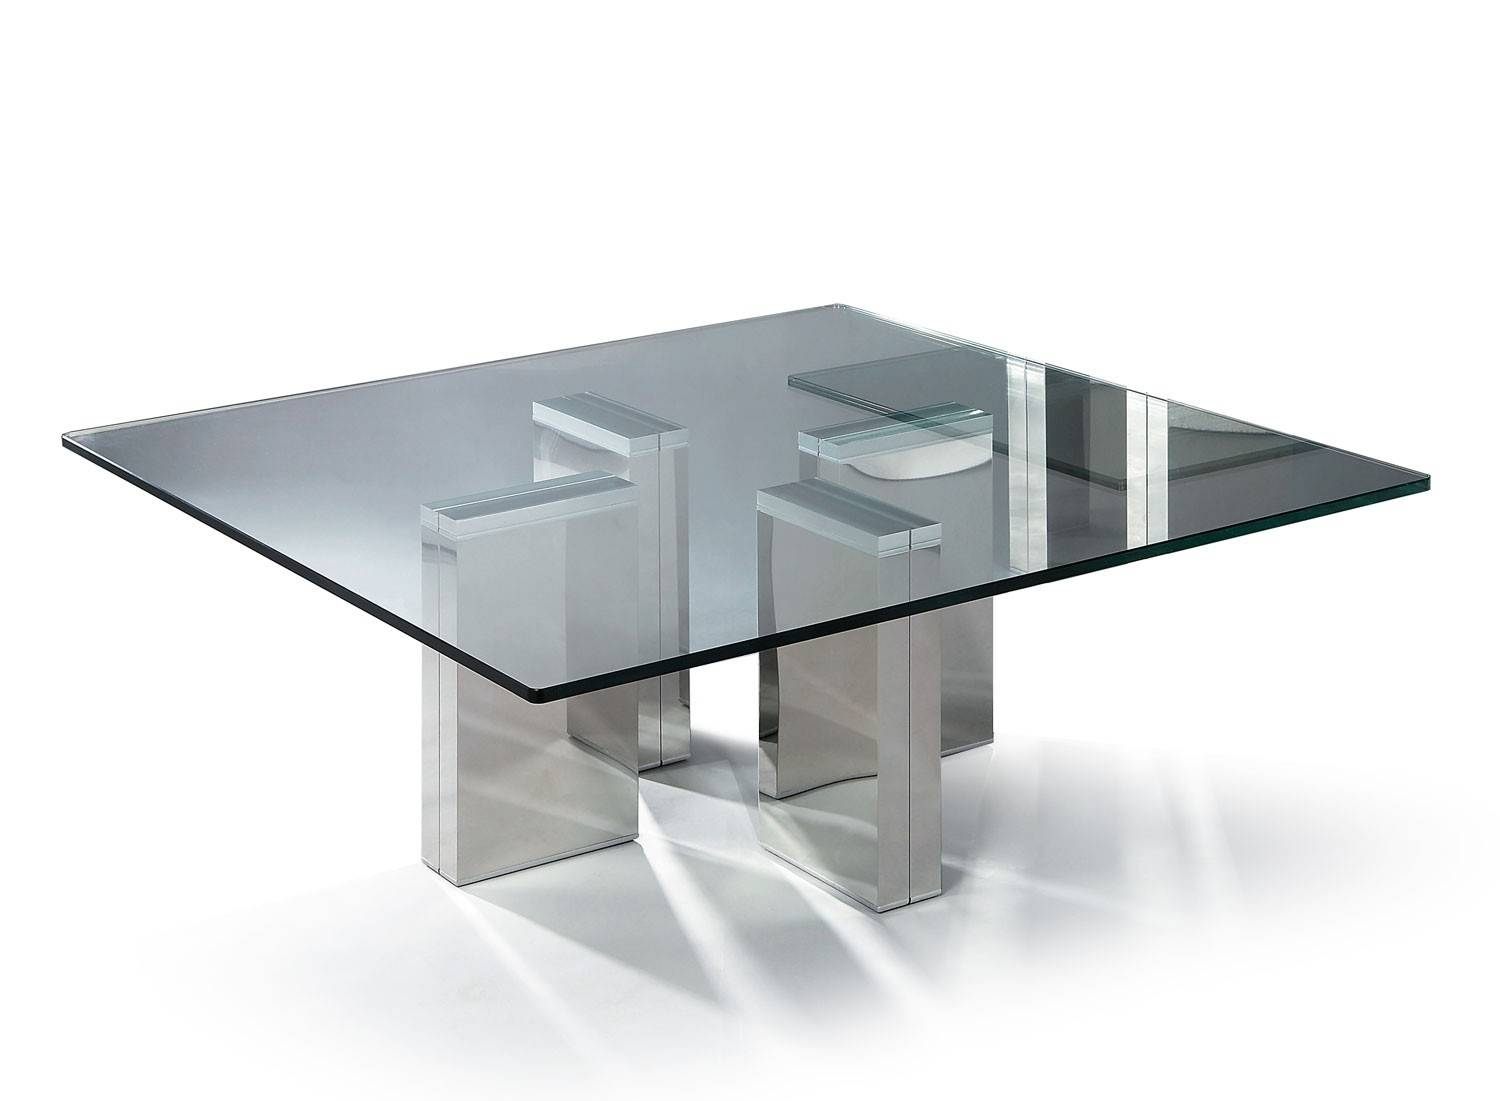 Table : Modern Square Glass Coffee Table Transitional Large Modern for Modern Square Glass Coffee Tables (Image 15 of 15)